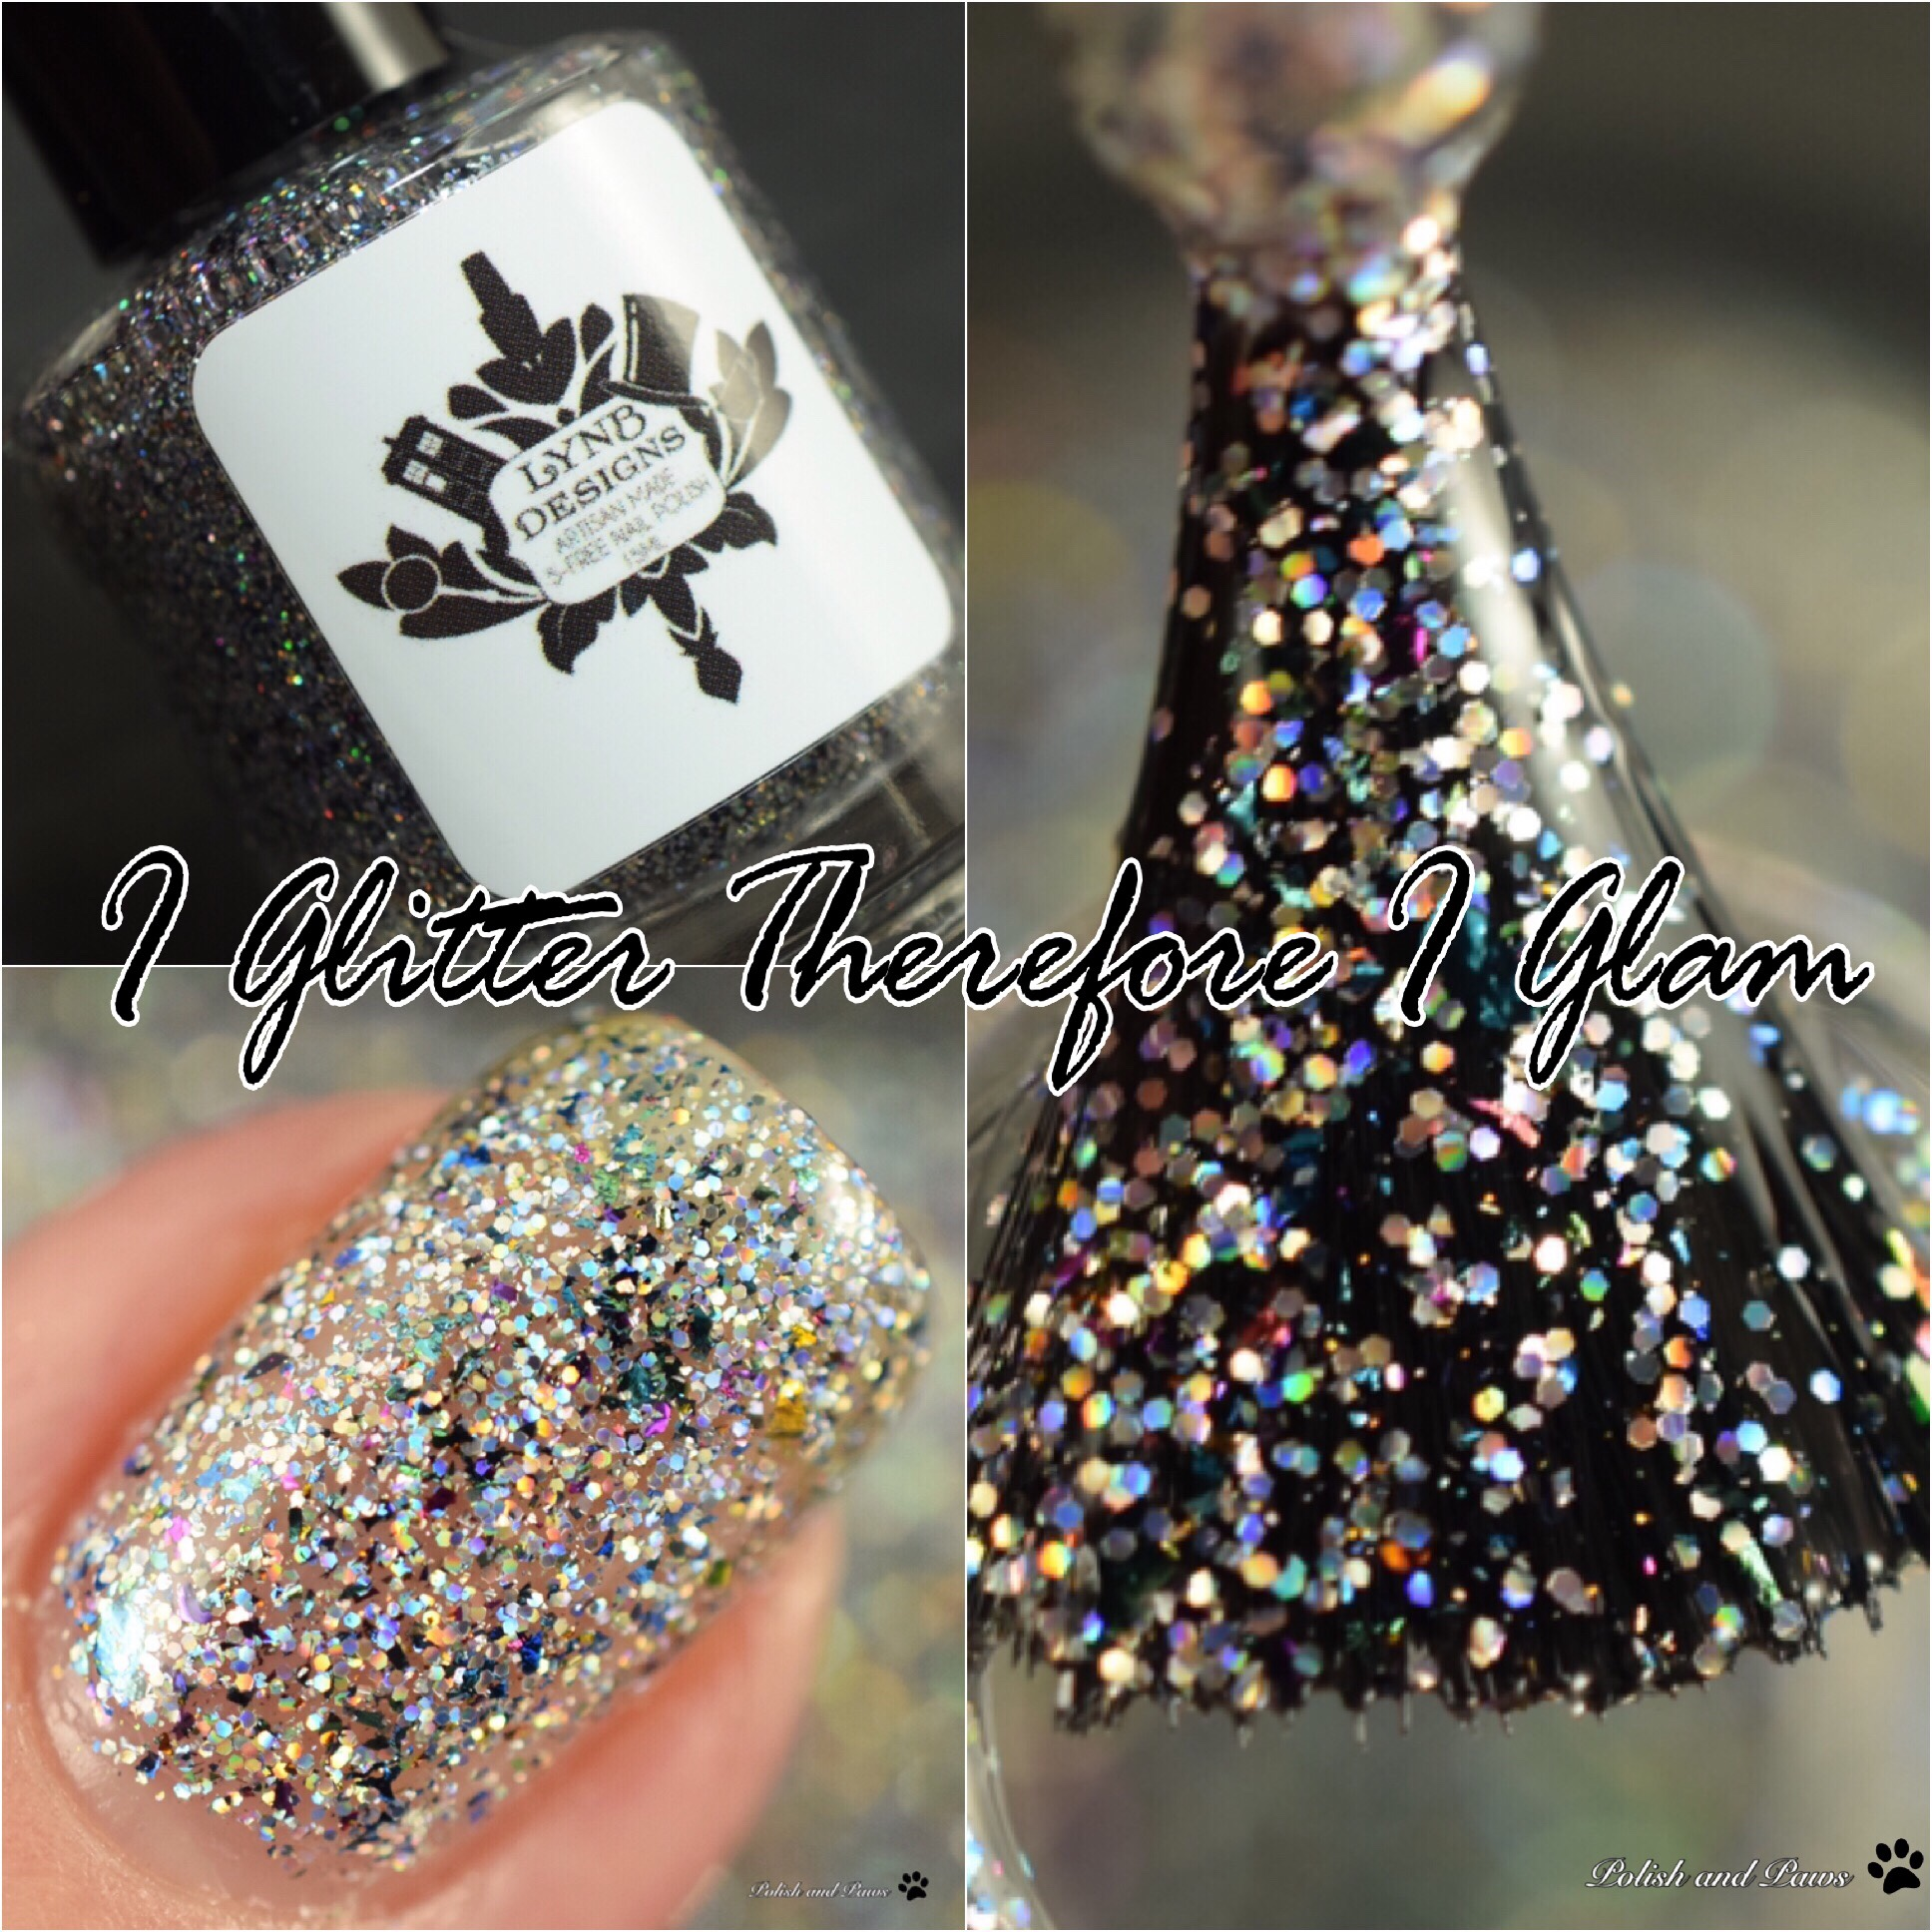 LynB Designs I Glitter Therefore I Glam